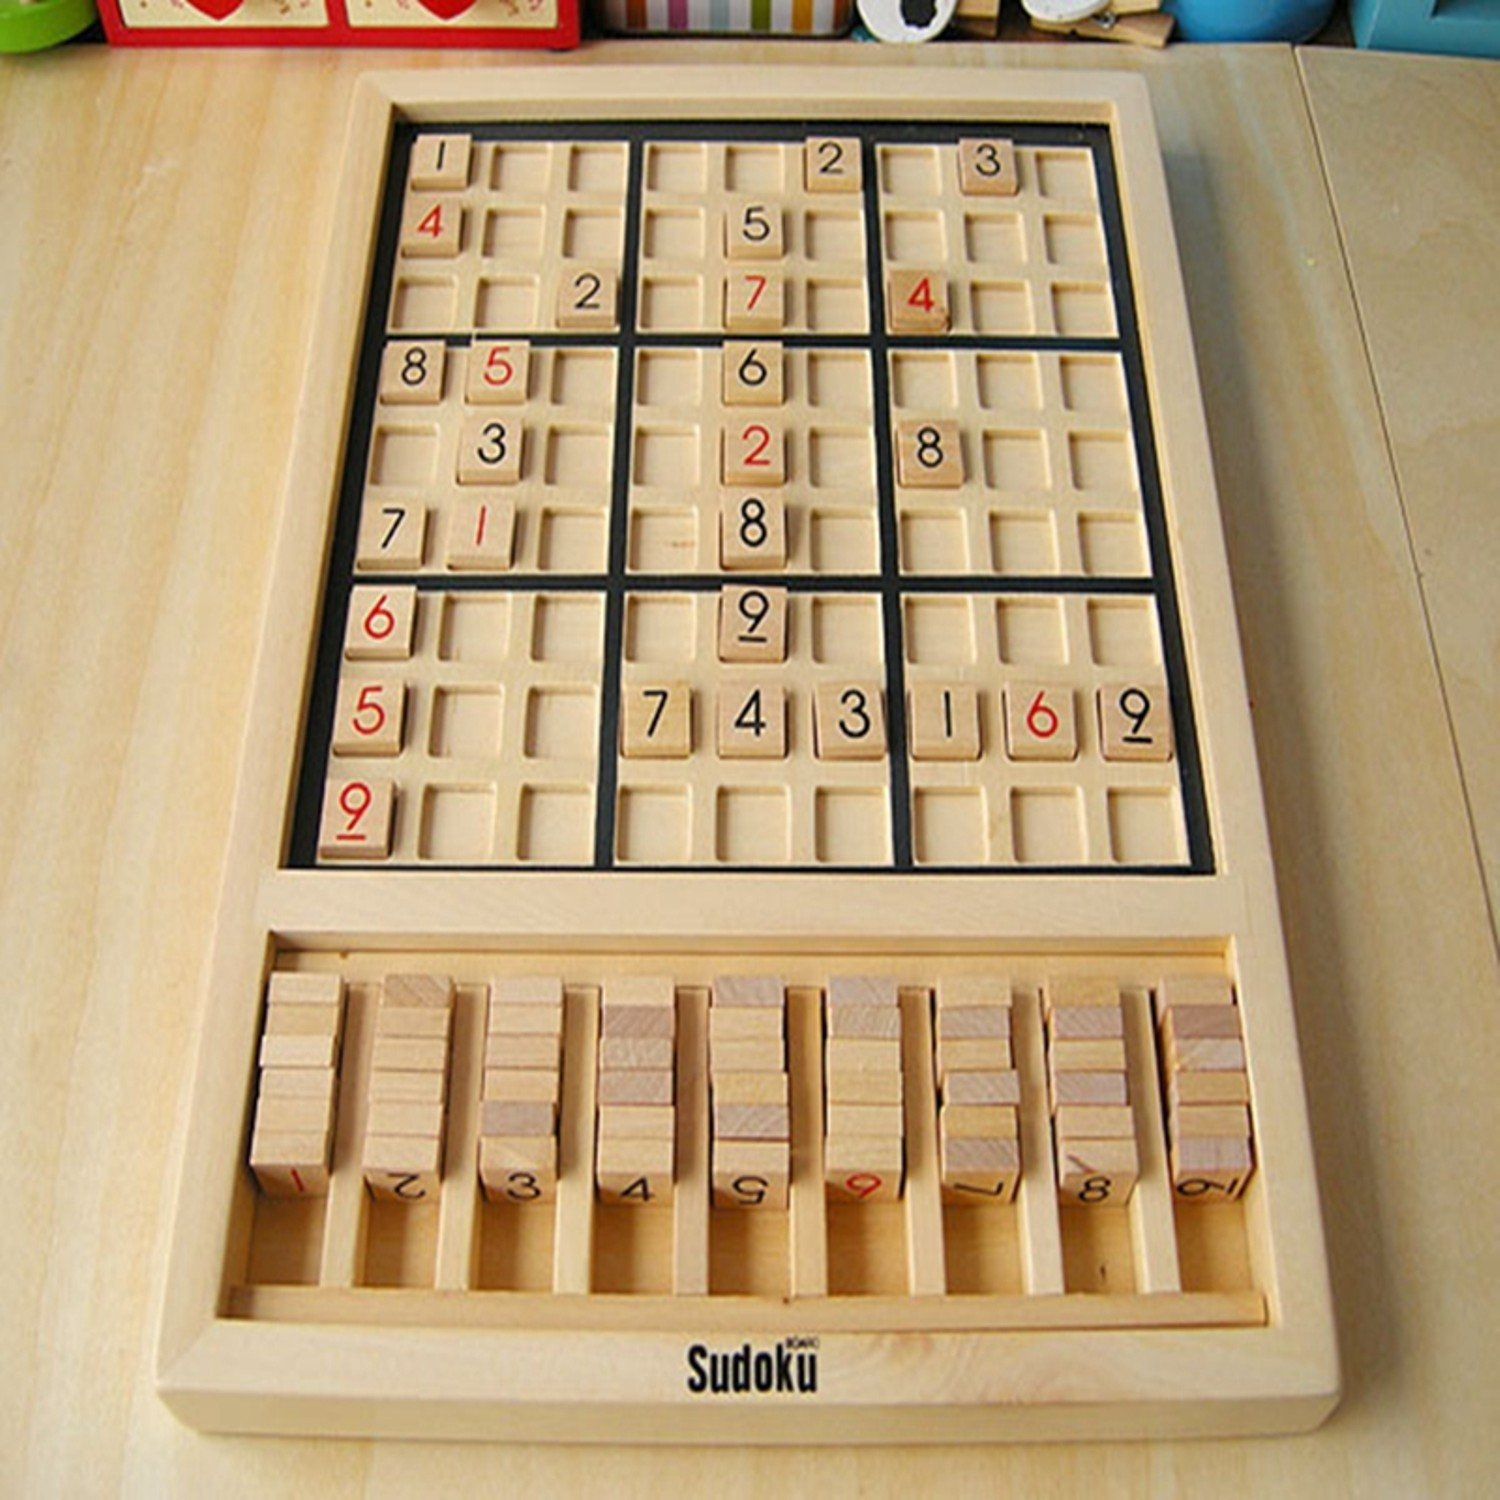 Wooden Puzzle Sudoku Play Game For Children Rompecabezas Brinquedos Educativos Educational Toy Adult Logical Thinking